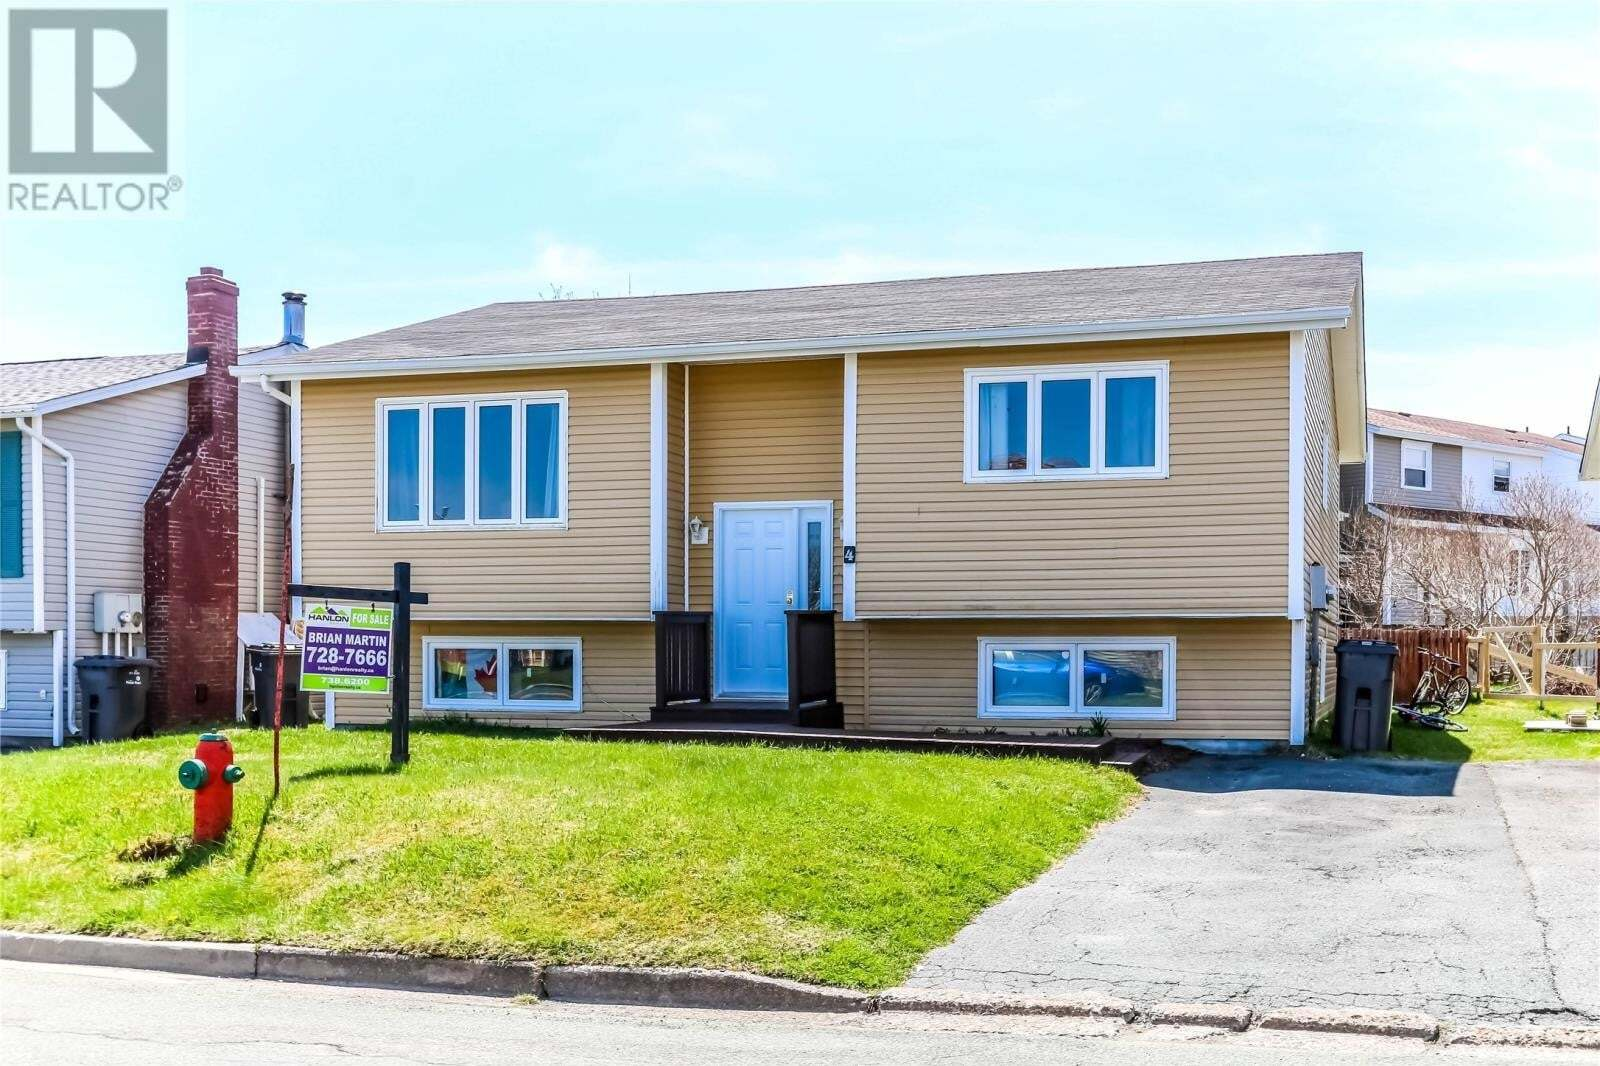 House for sale at 4 Barbour Dr Mount Pearl Newfoundland - MLS: 1213345